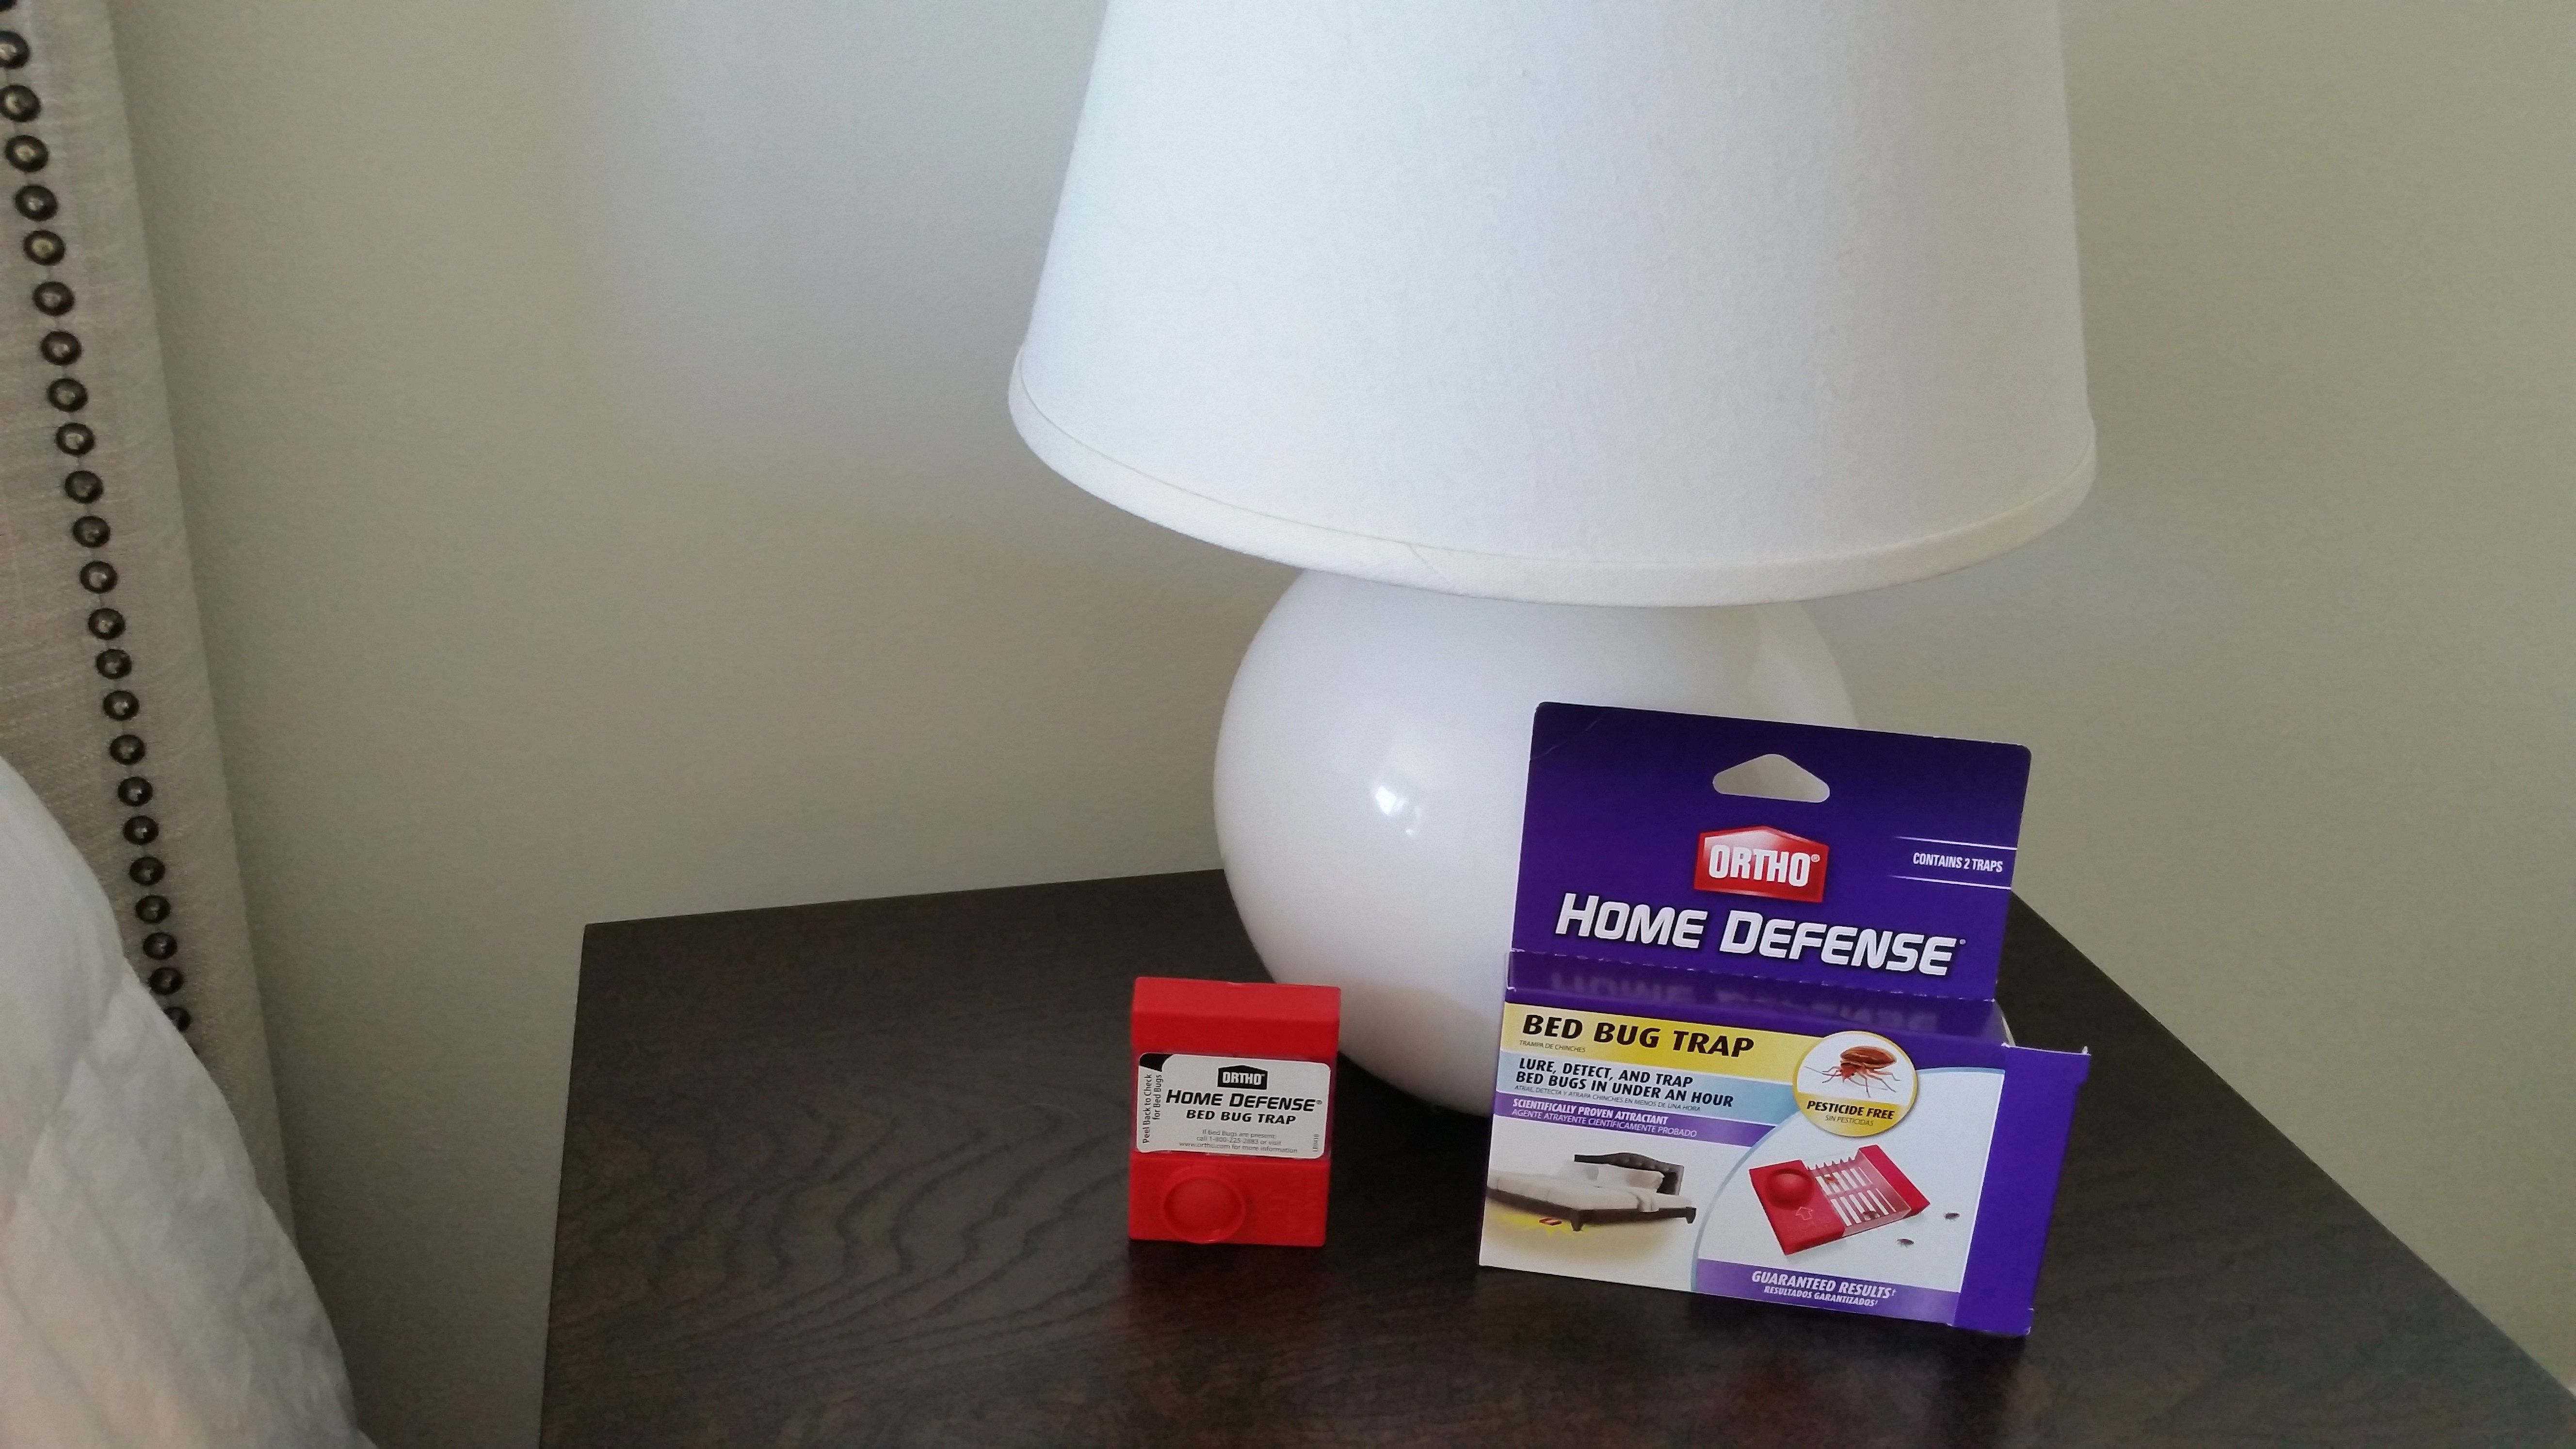 Worried About Bed Bugs? This New Product Can Help Bed